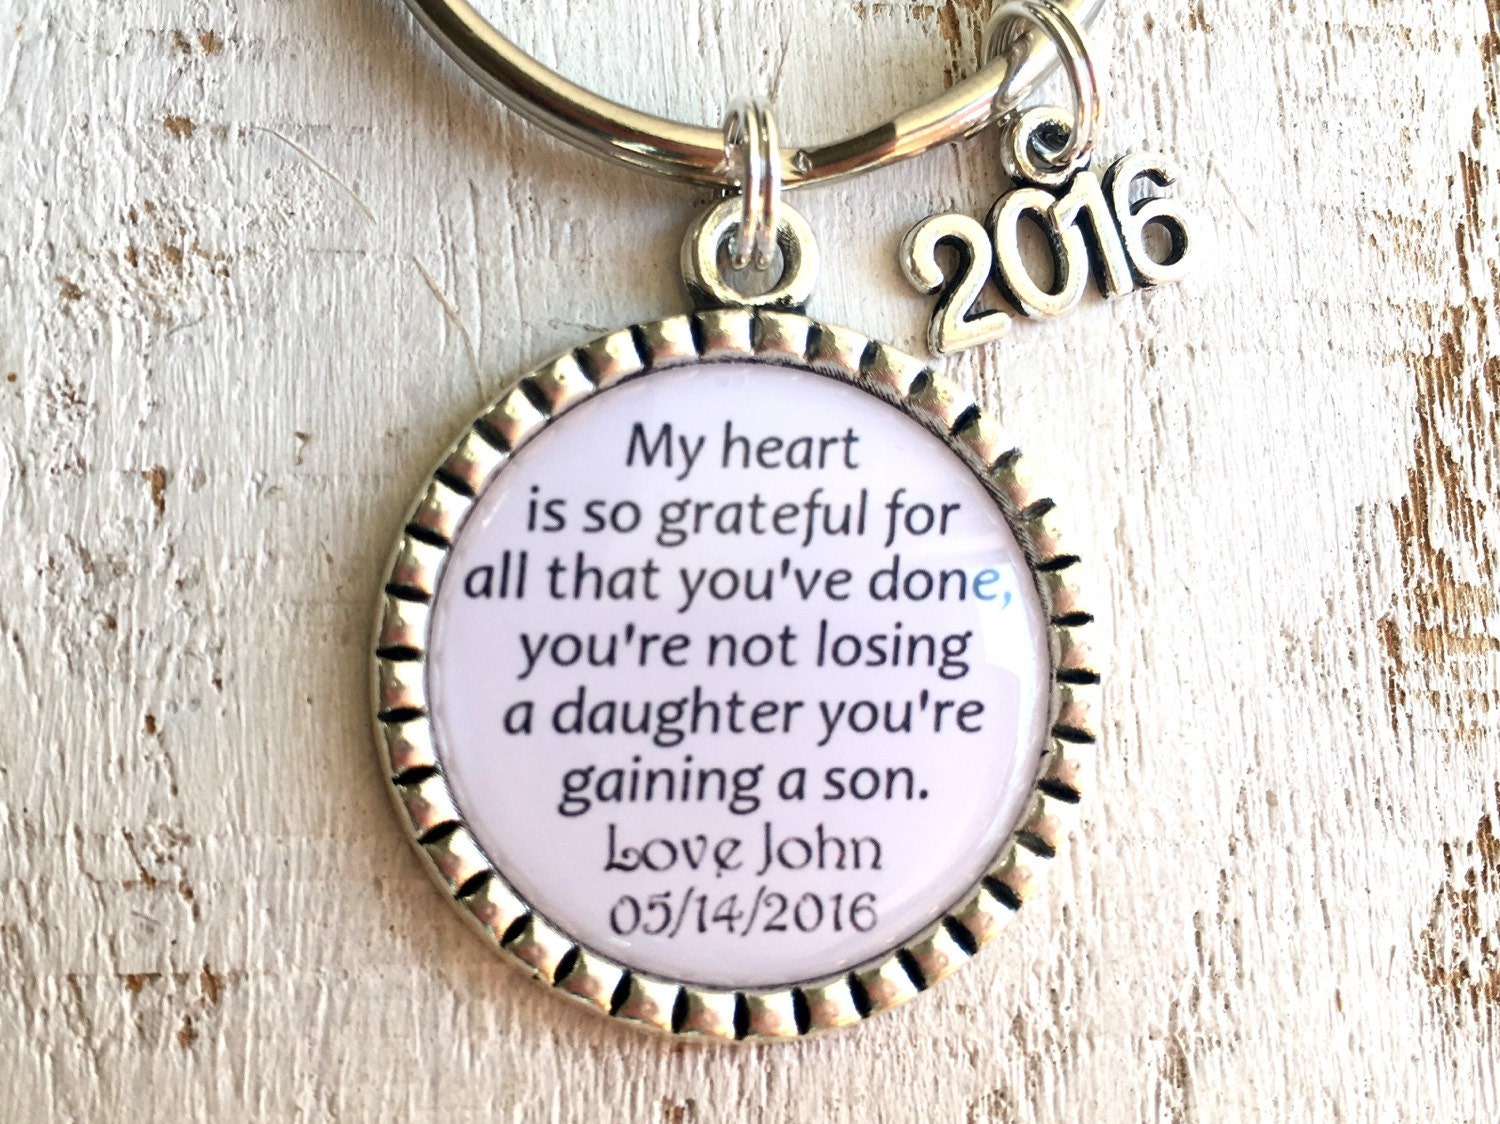 Groom Wedding Gift From Bride: Father-of-the-Bride Gift From Groom Bride Father Wedding Gift